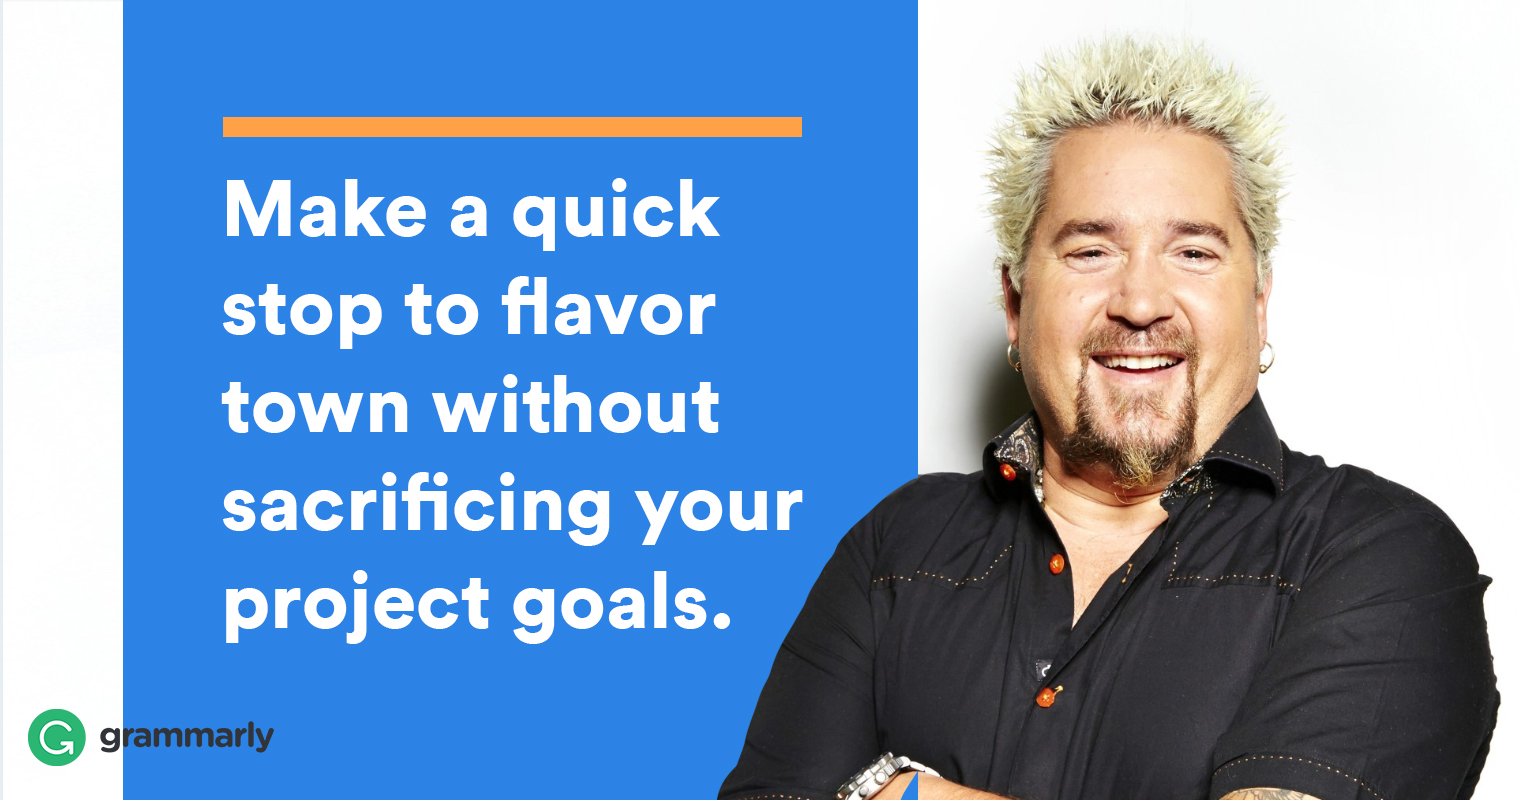 Improve Your Writing Time with Quick Recipes Ideas